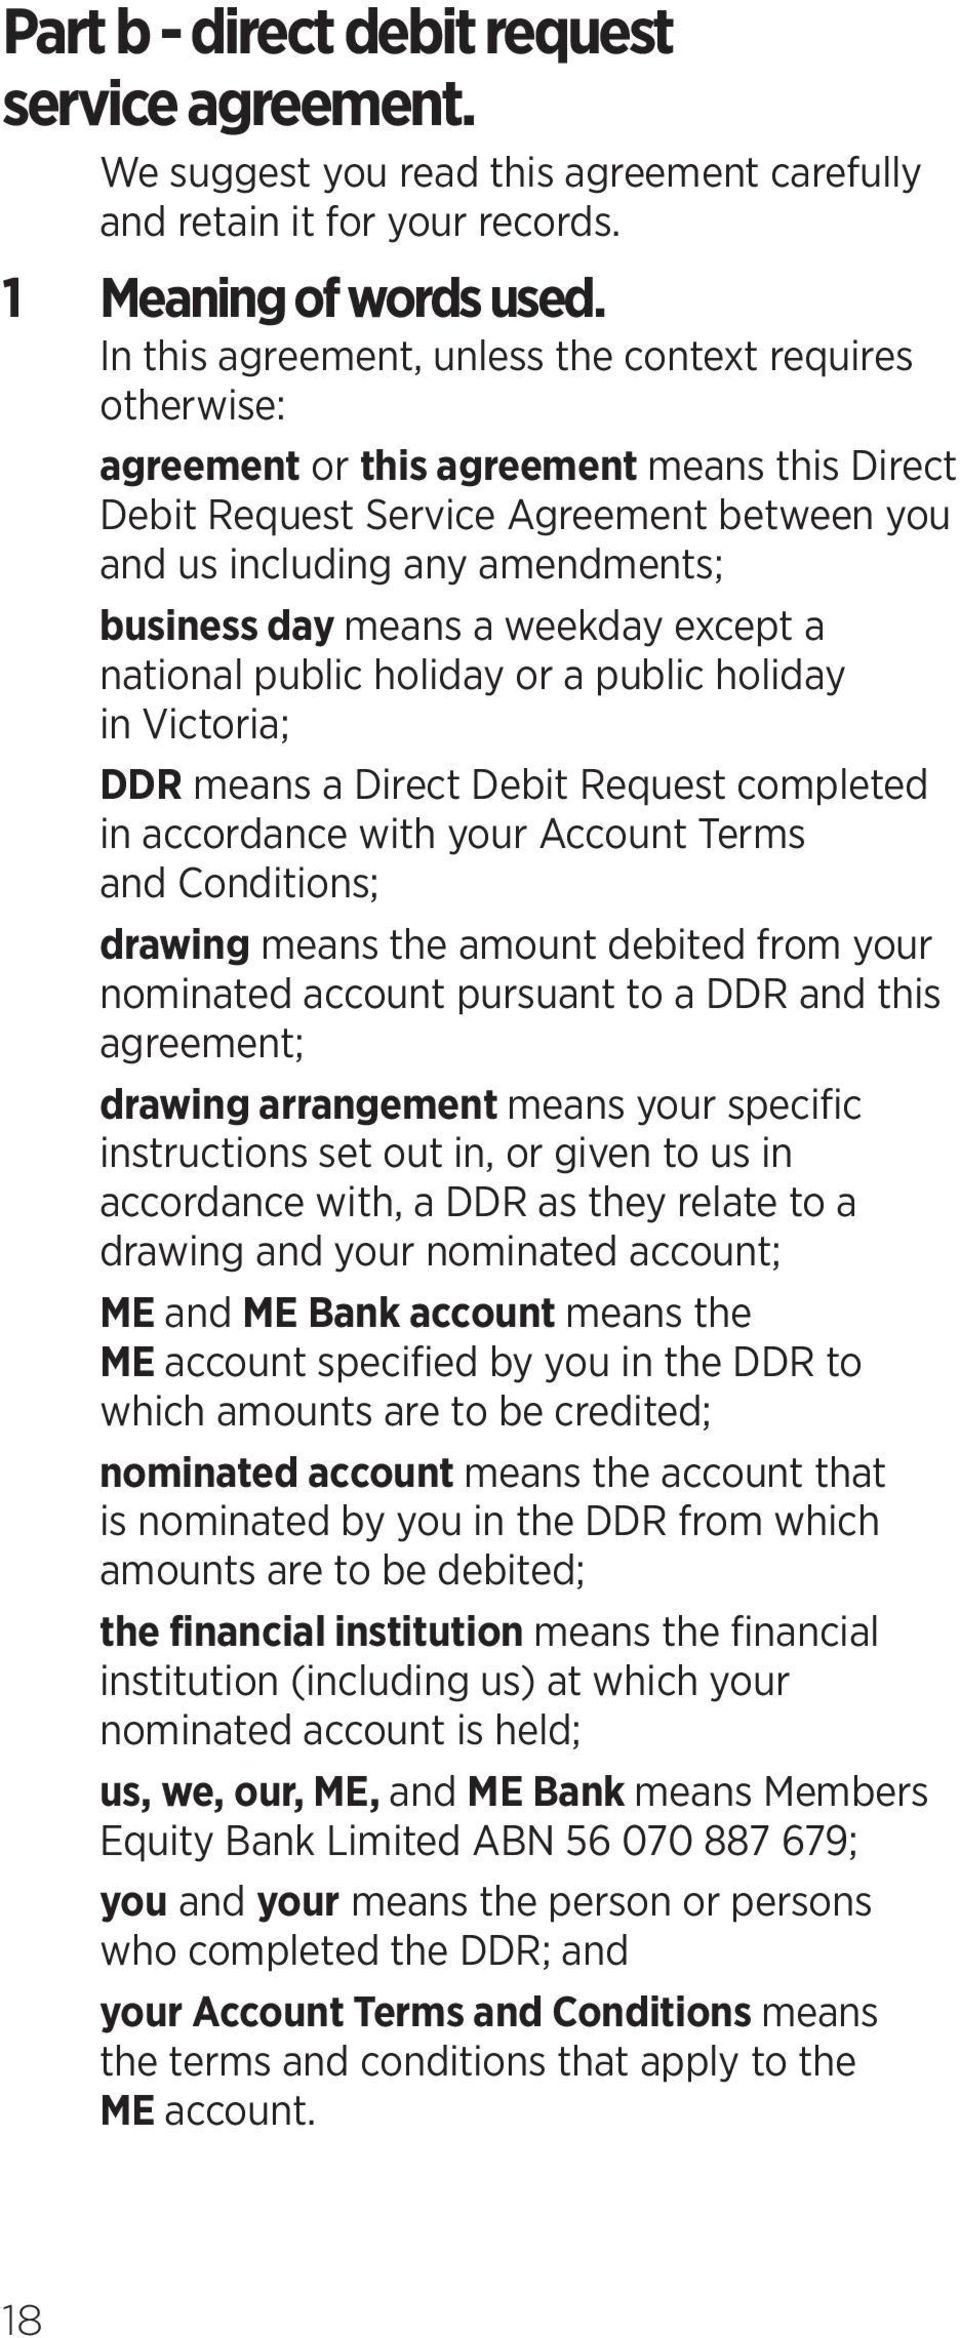 a weekday except a national public holiday or a public holiday in Victoria; DDR means a Direct Debit Request completed in accordance with your Account Terms and Conditions; drawing means the amount